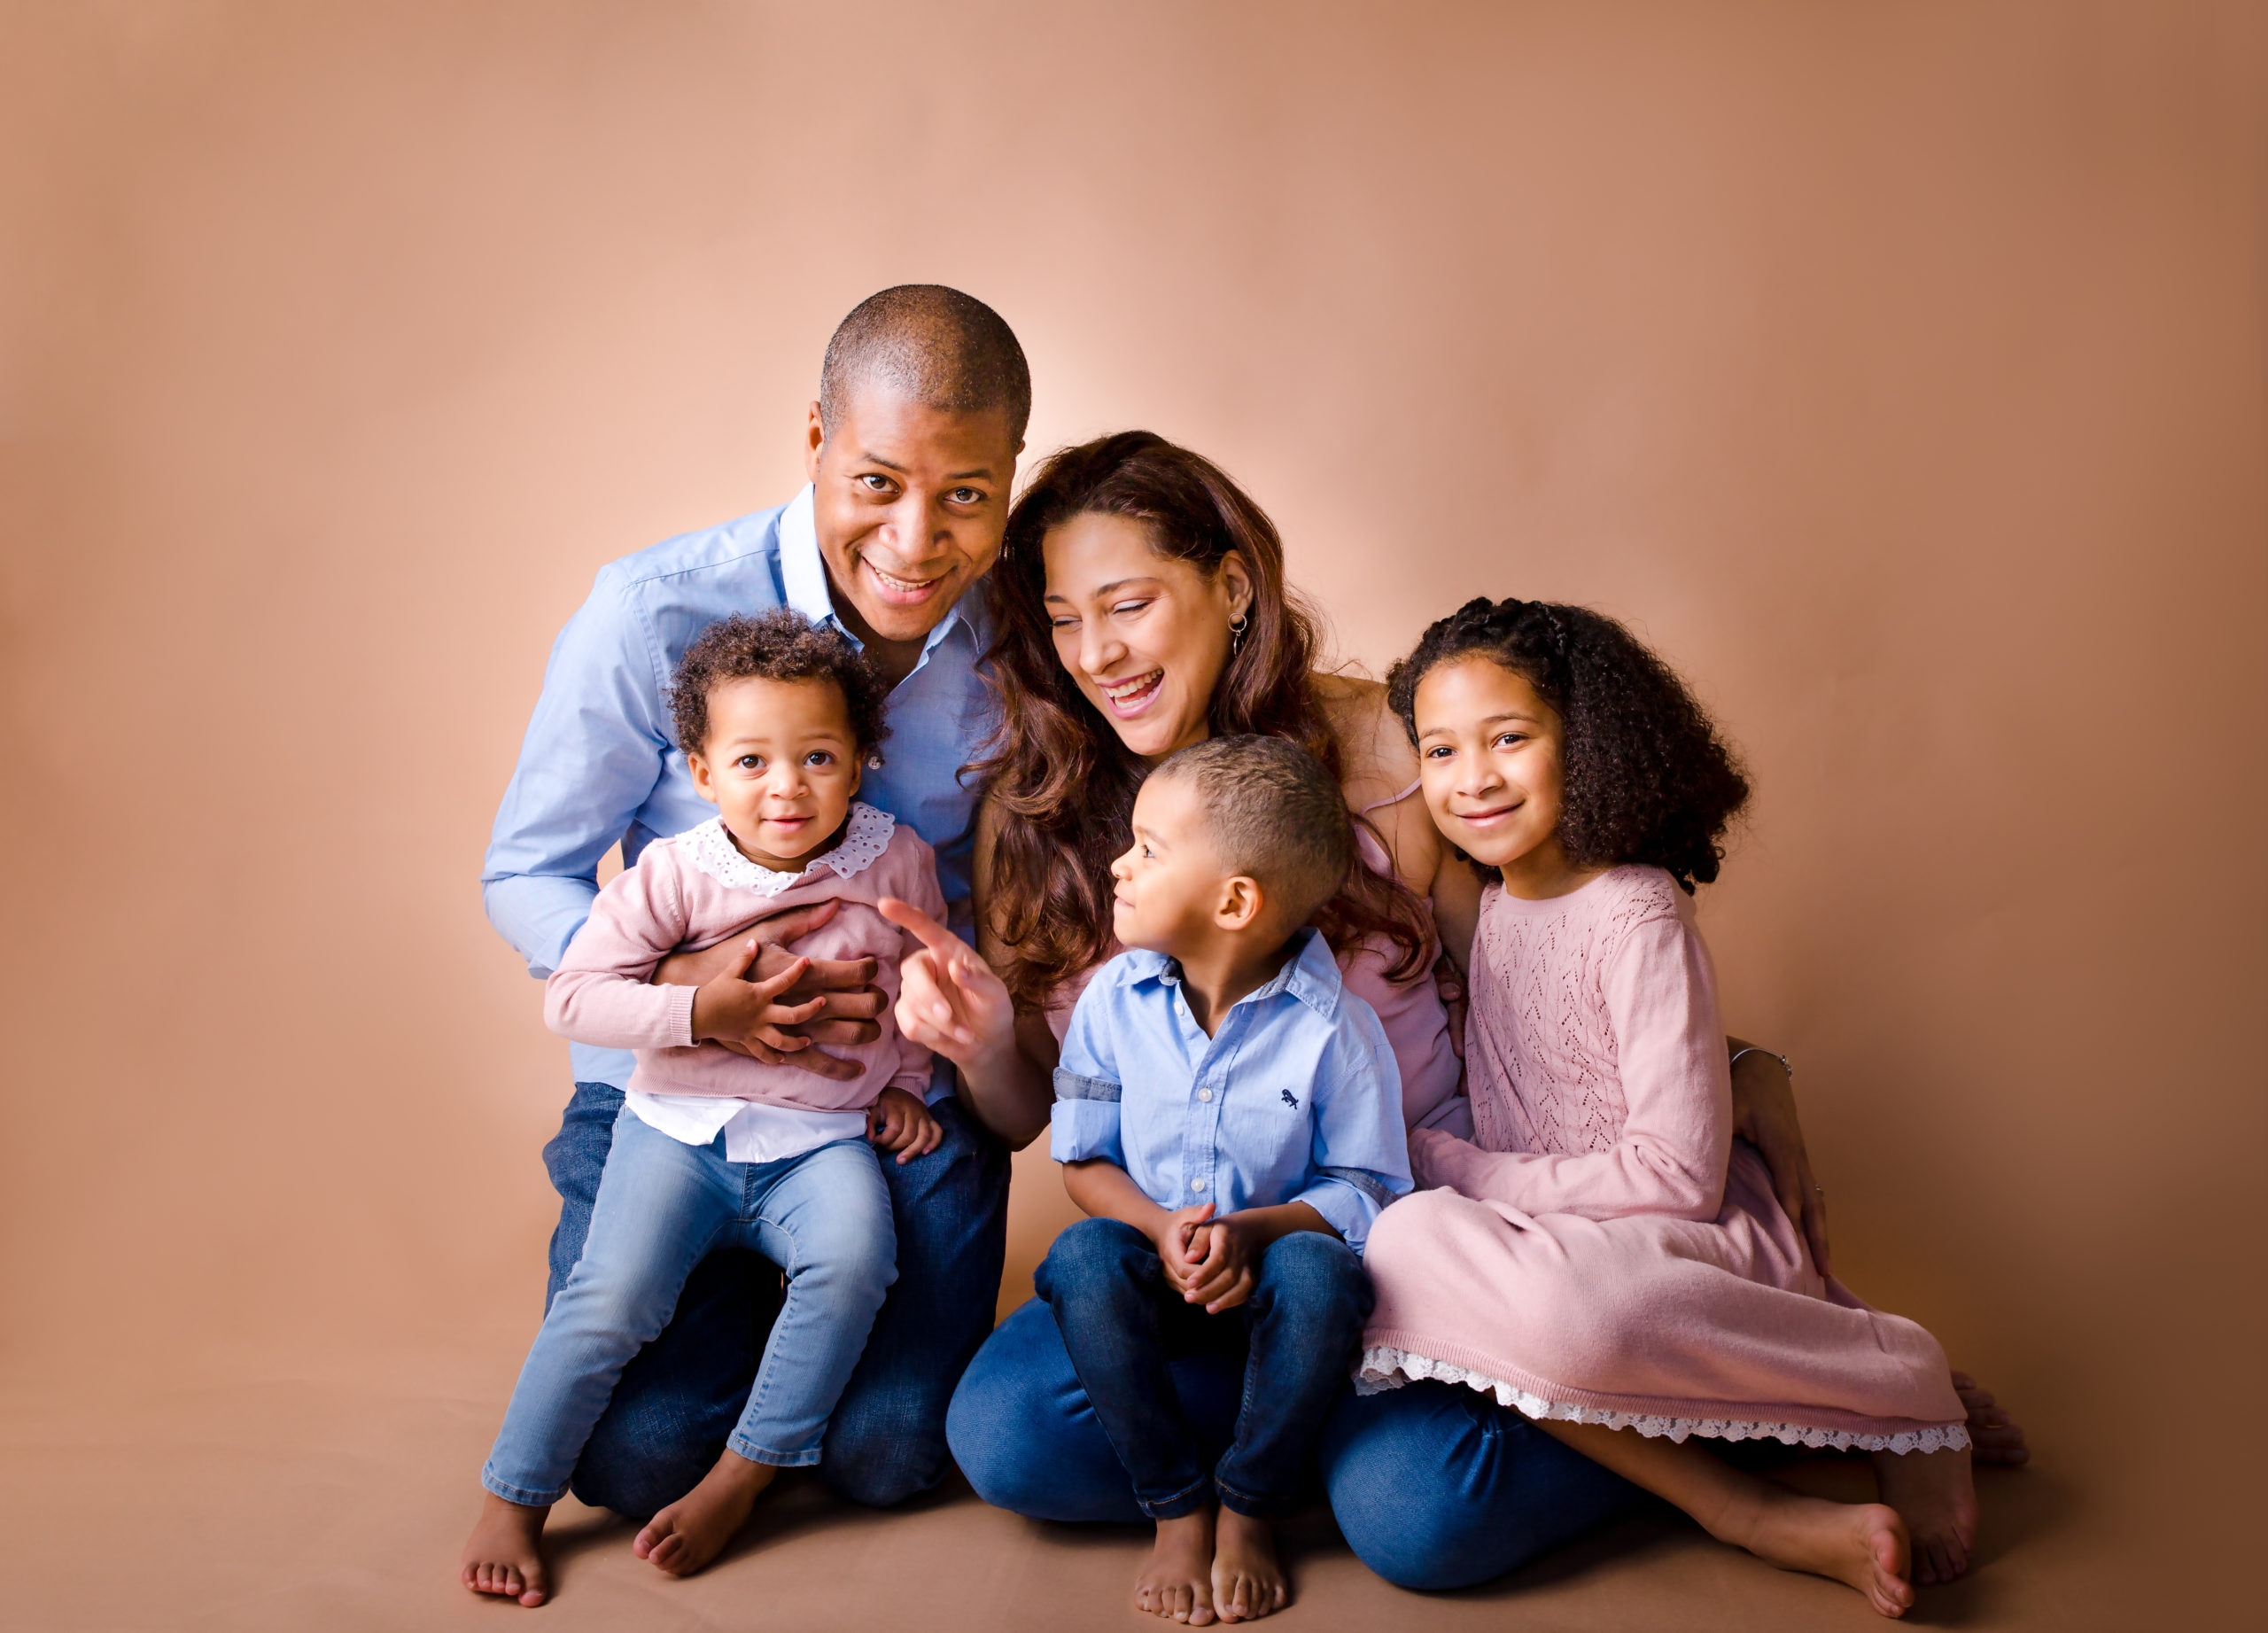 Family and children photographer in South West London SW19 family portrait photography White mum dark skin dad holding their three beautiful children natural colours classic family group portrait